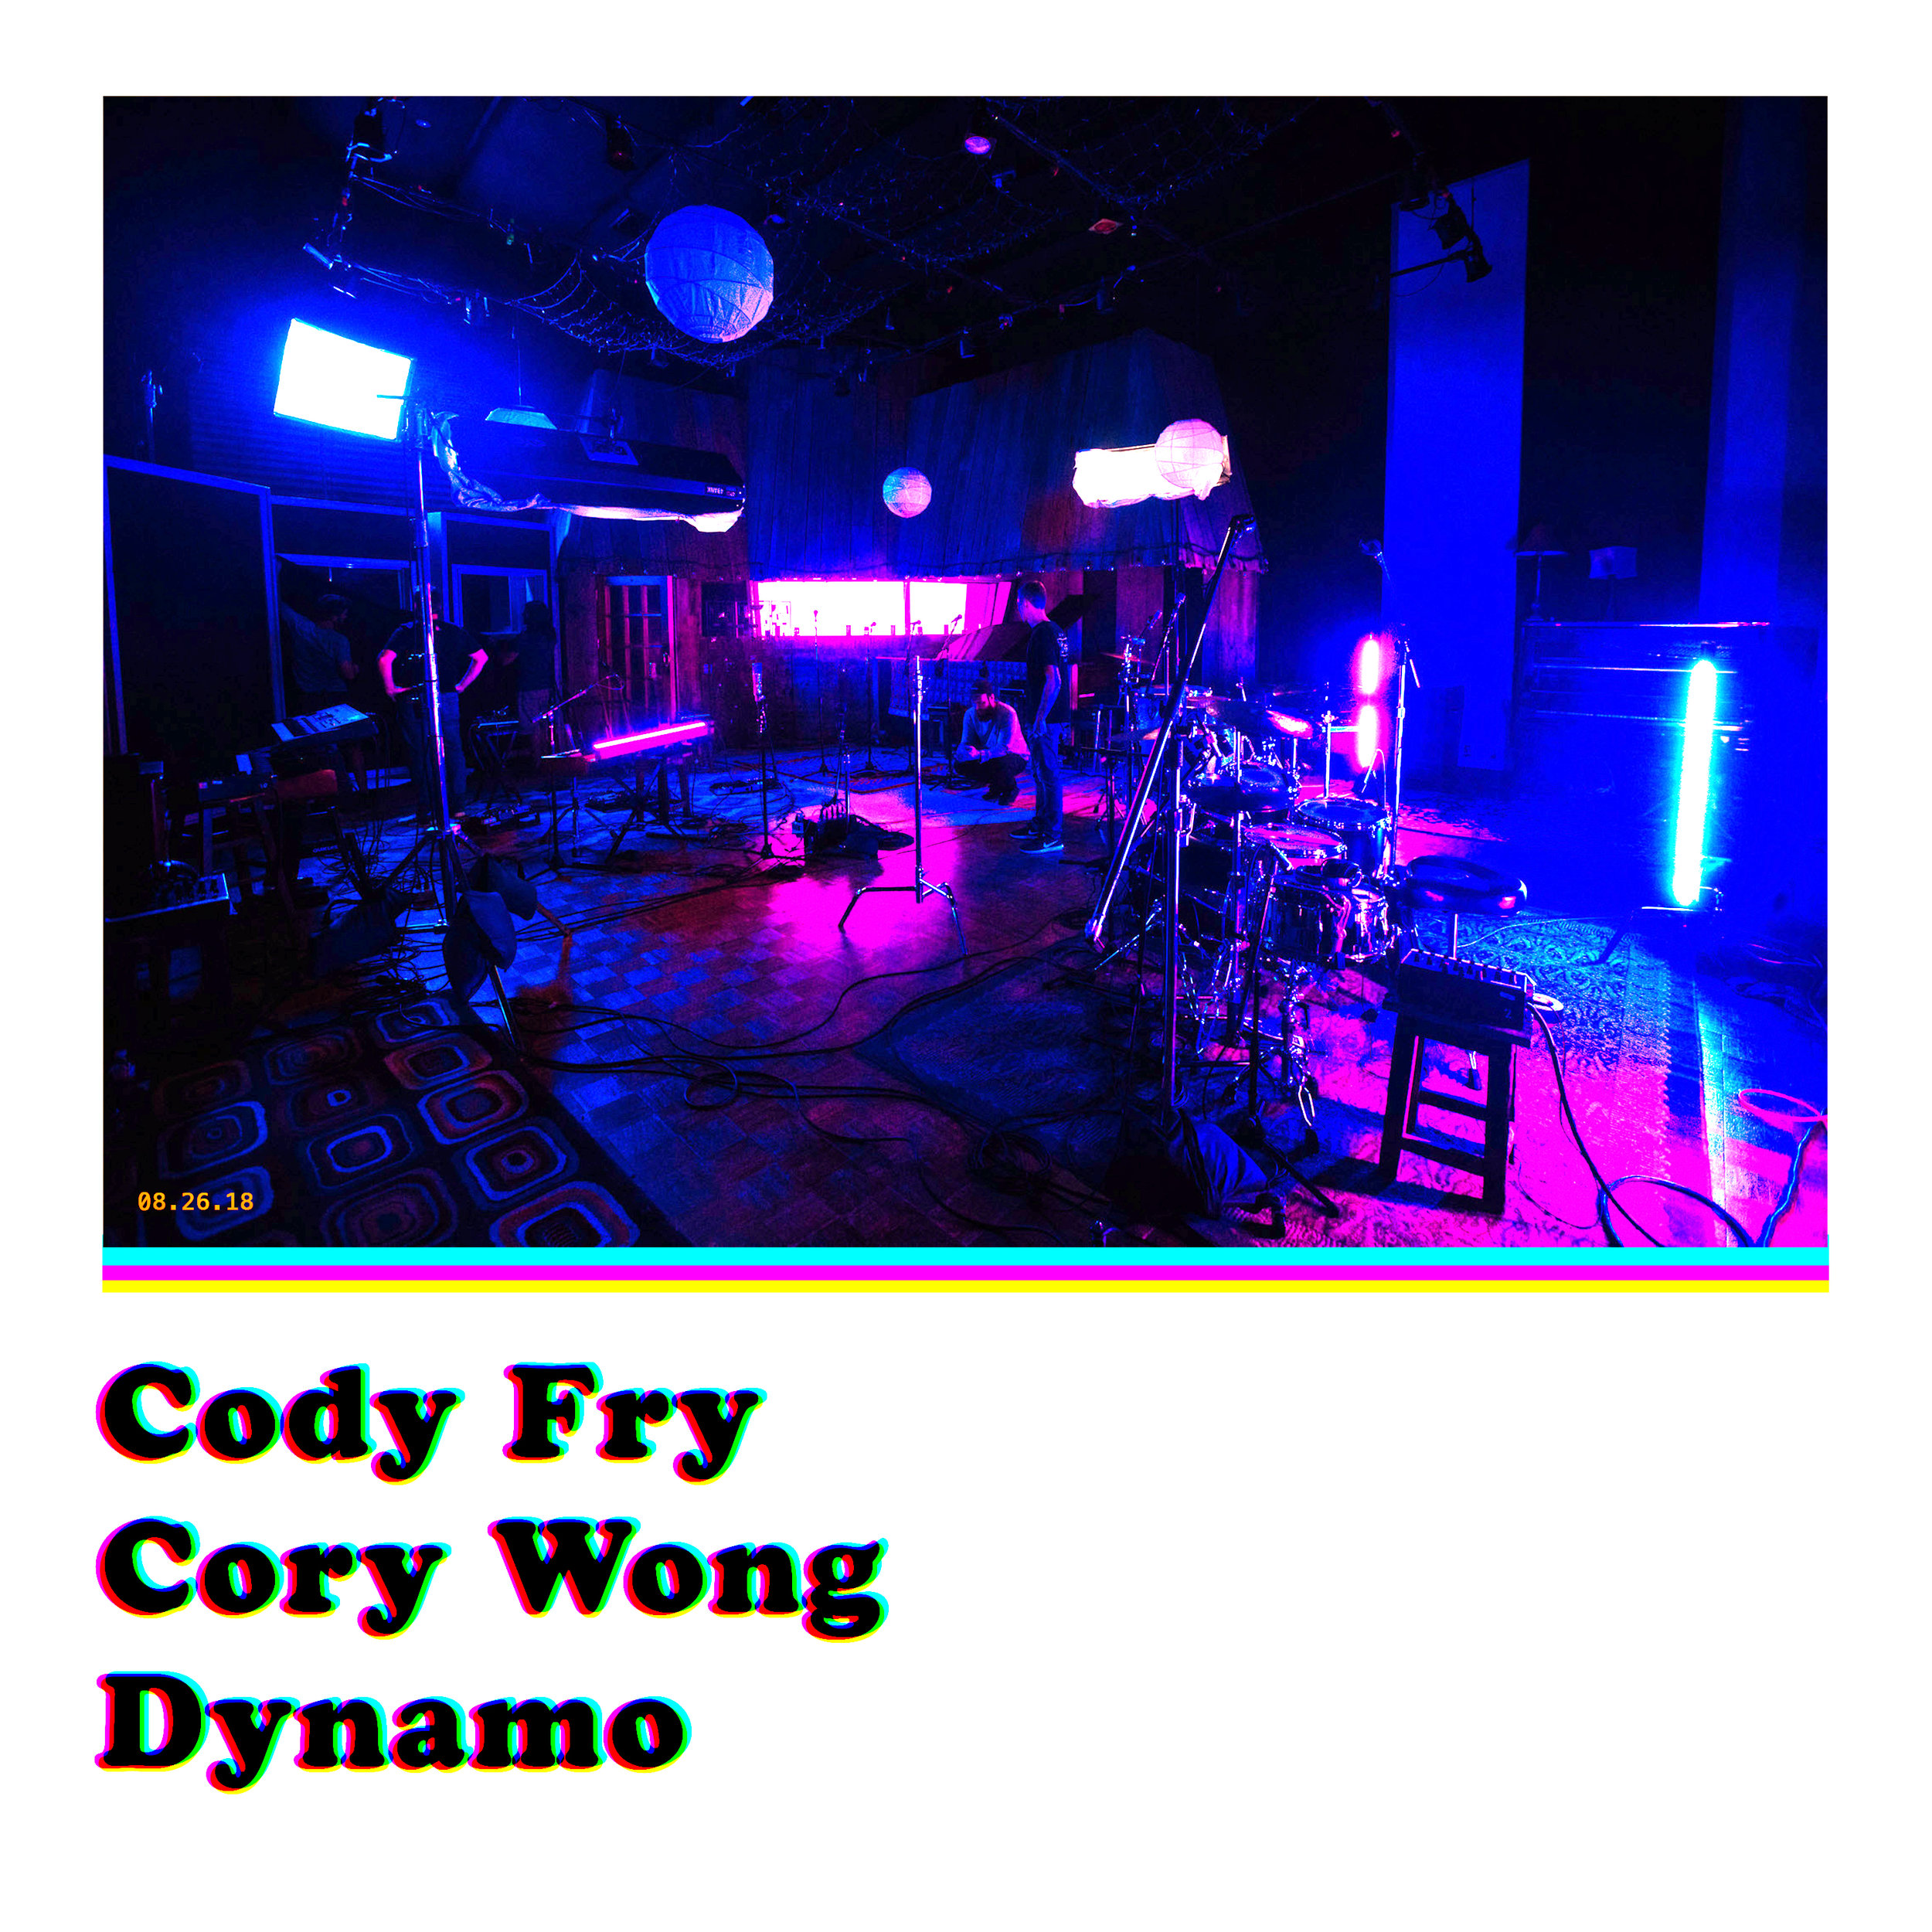 08.26.18 - Cody Fry // Cory Wong // DynamoPlease select your preferred music service from the options below.